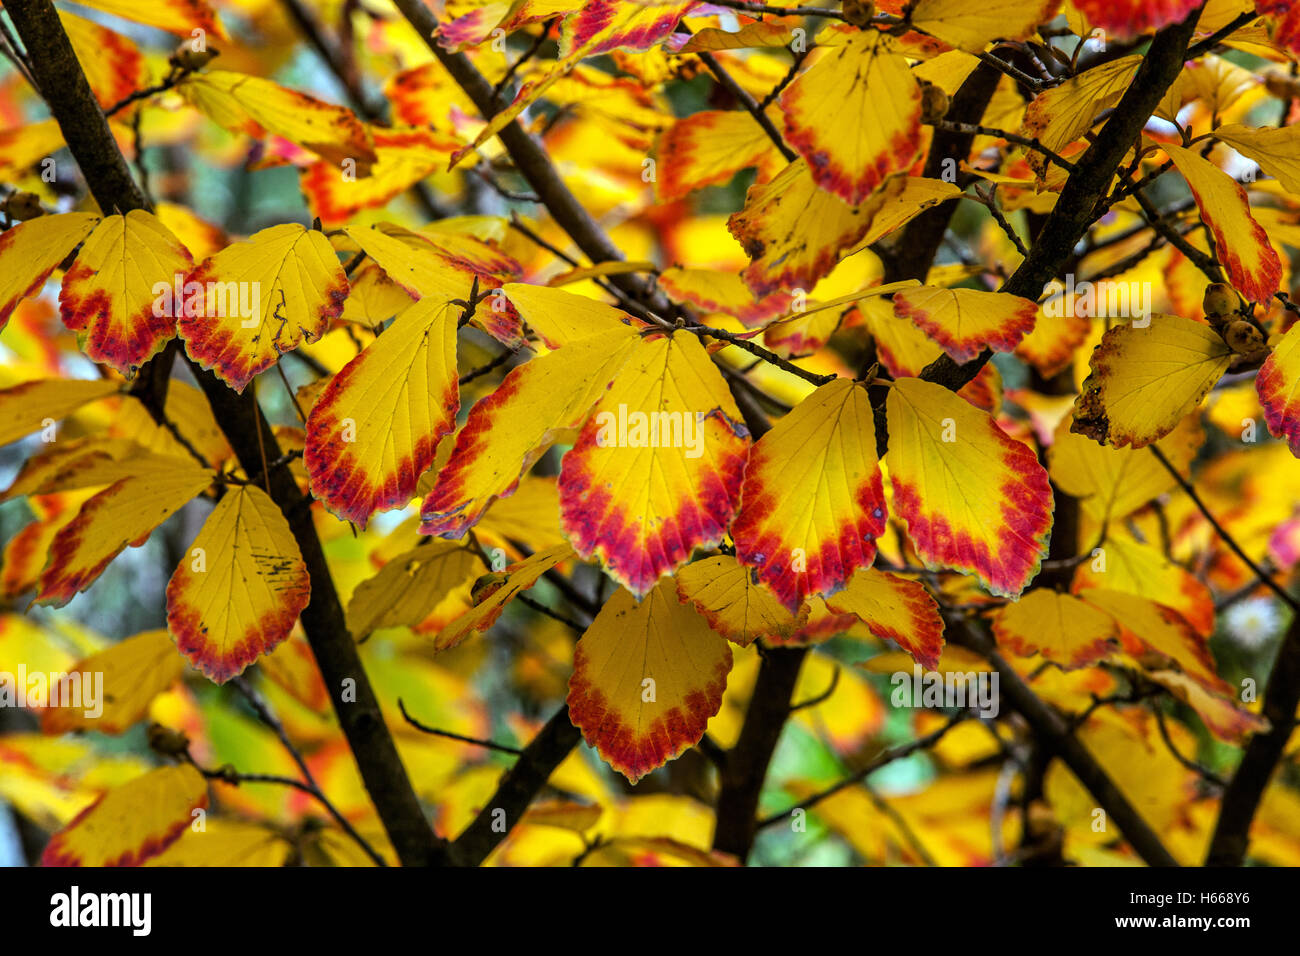 Witch-hazel, Hamamelis intermedia autumn color leaves Stock Photo: 124299258 - Alamy